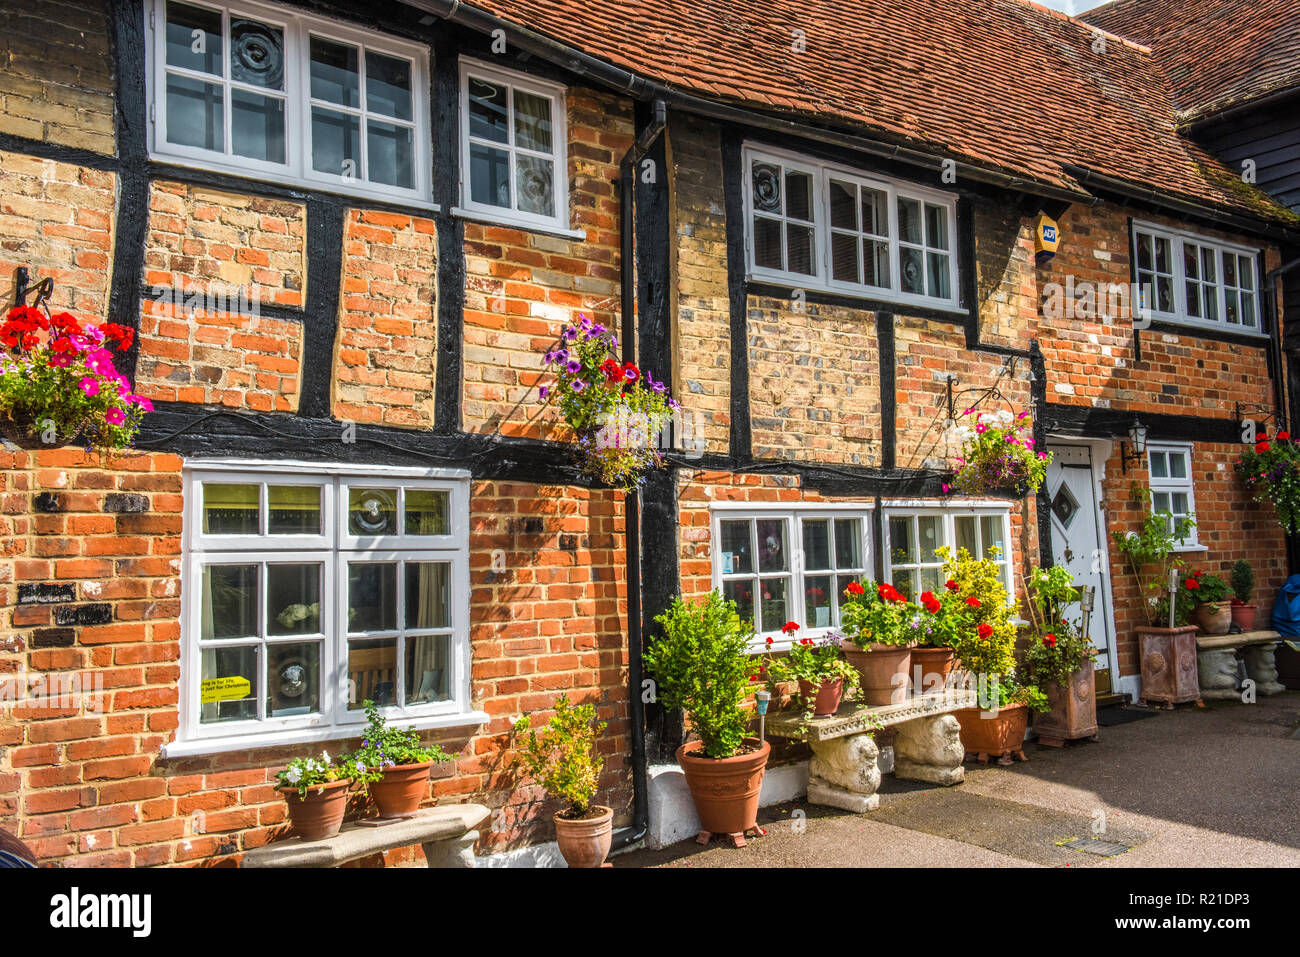 Historic timber-framed brick building in Old Amersham, Buckinghamshire, England - Stock Image